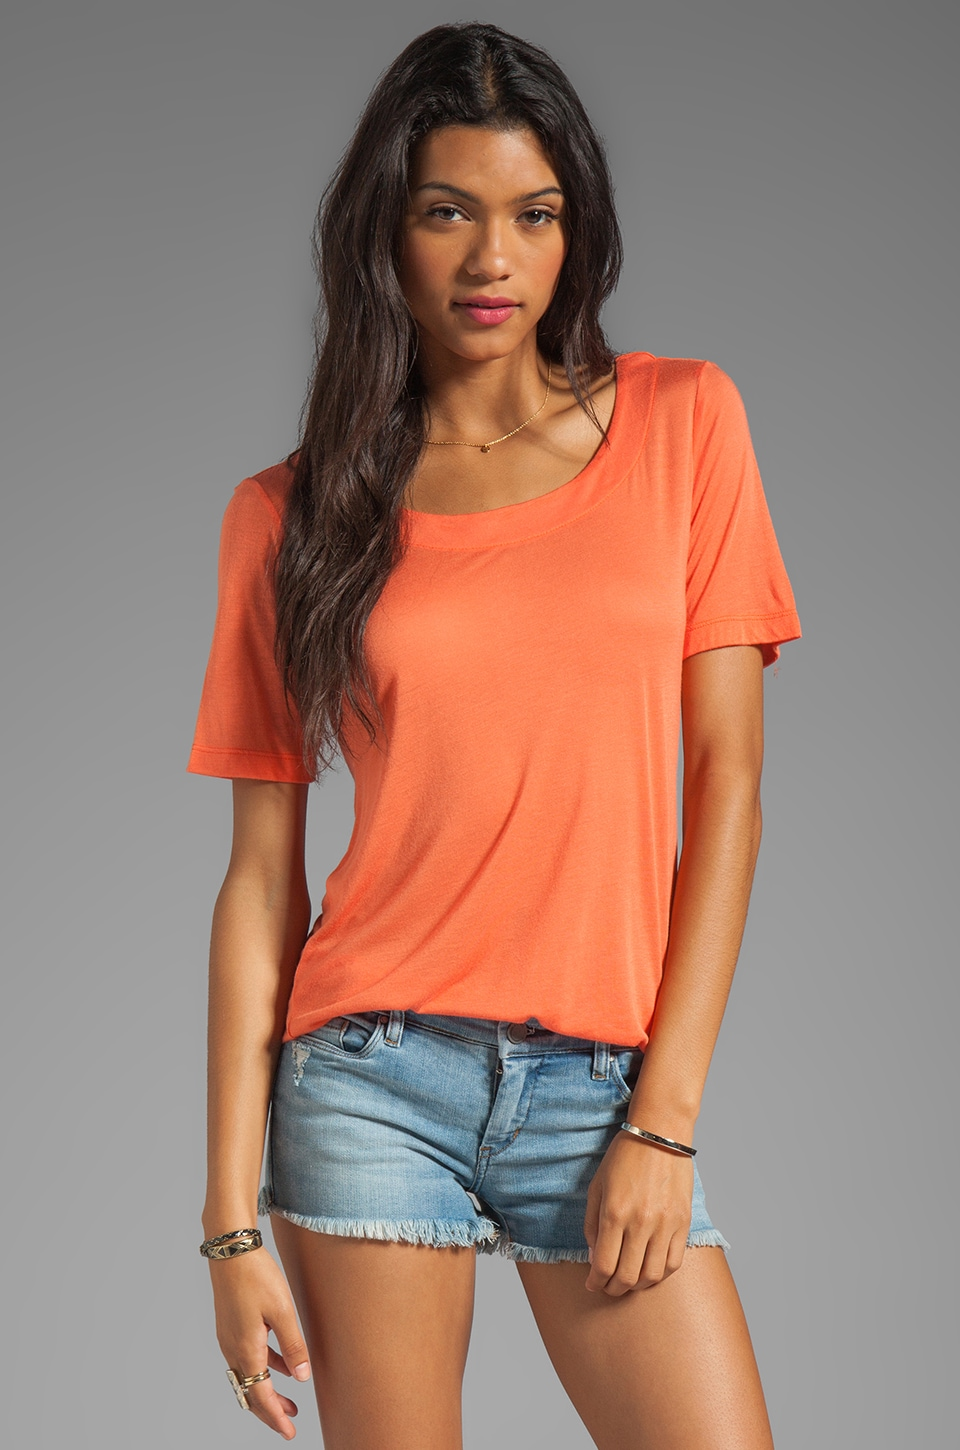 Kain Sheer Jersey Paloma Tee in Mandarin Orange